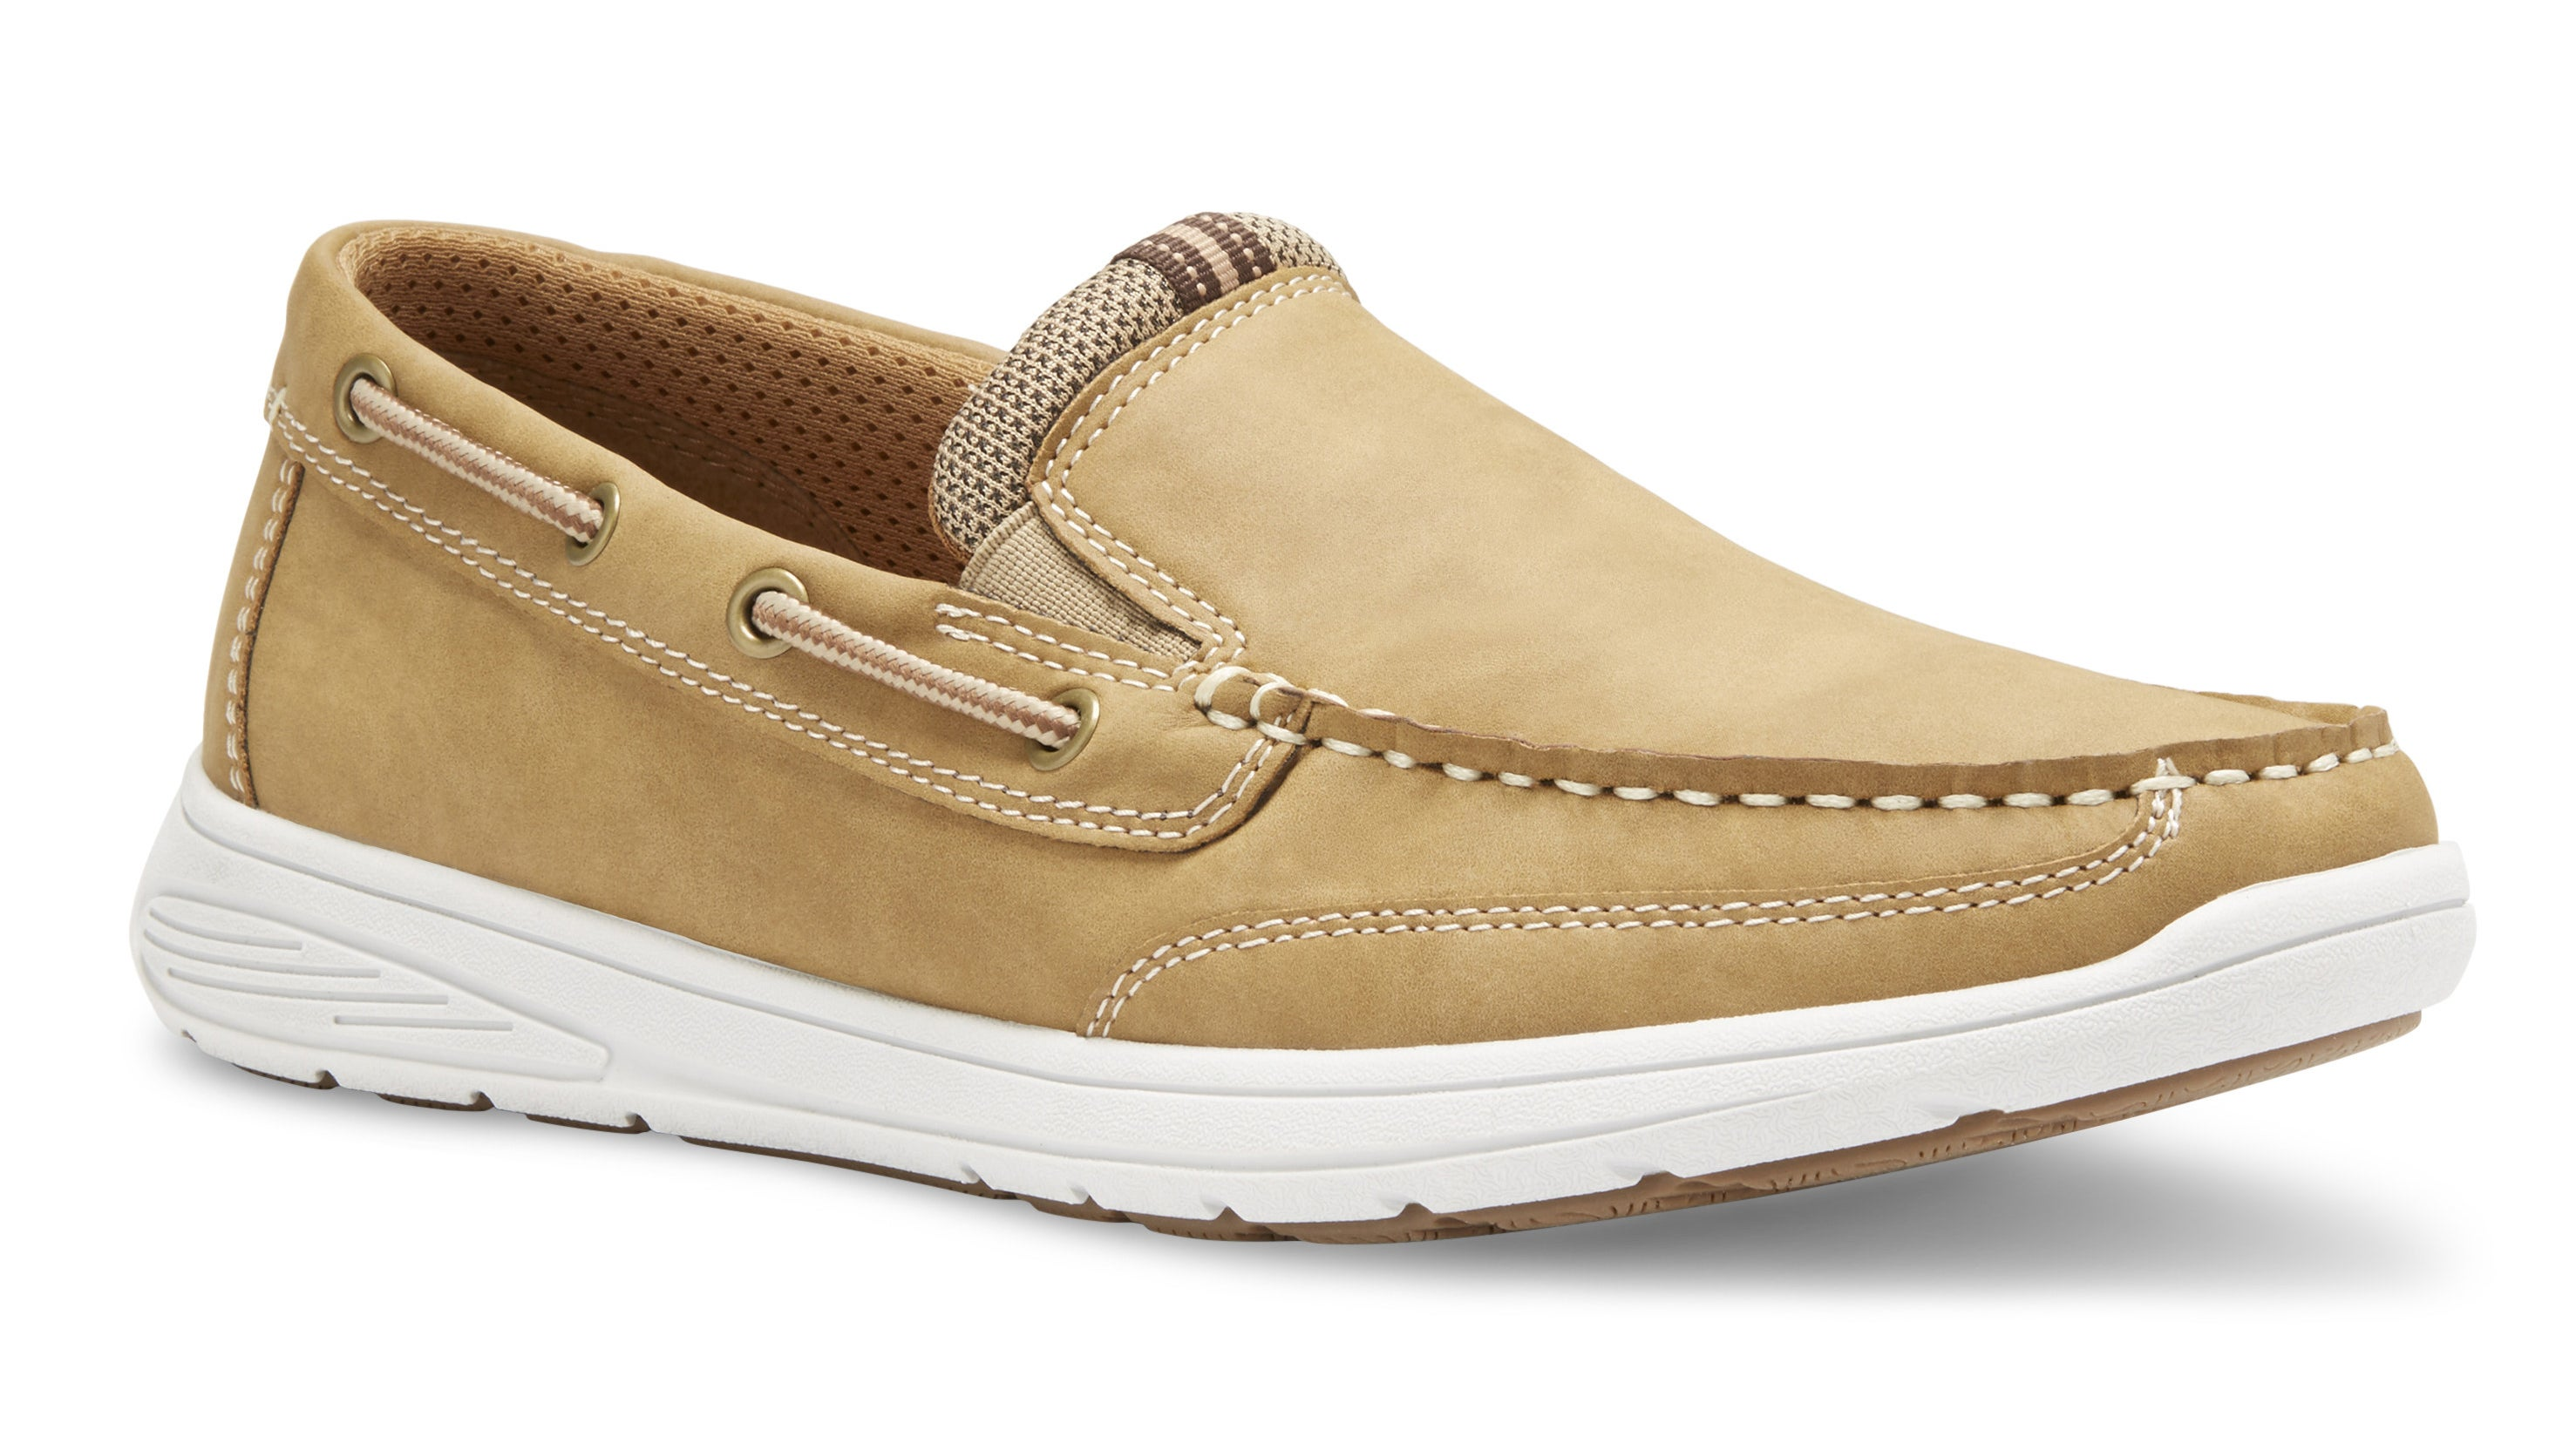 a men's khaki slip-on shoe